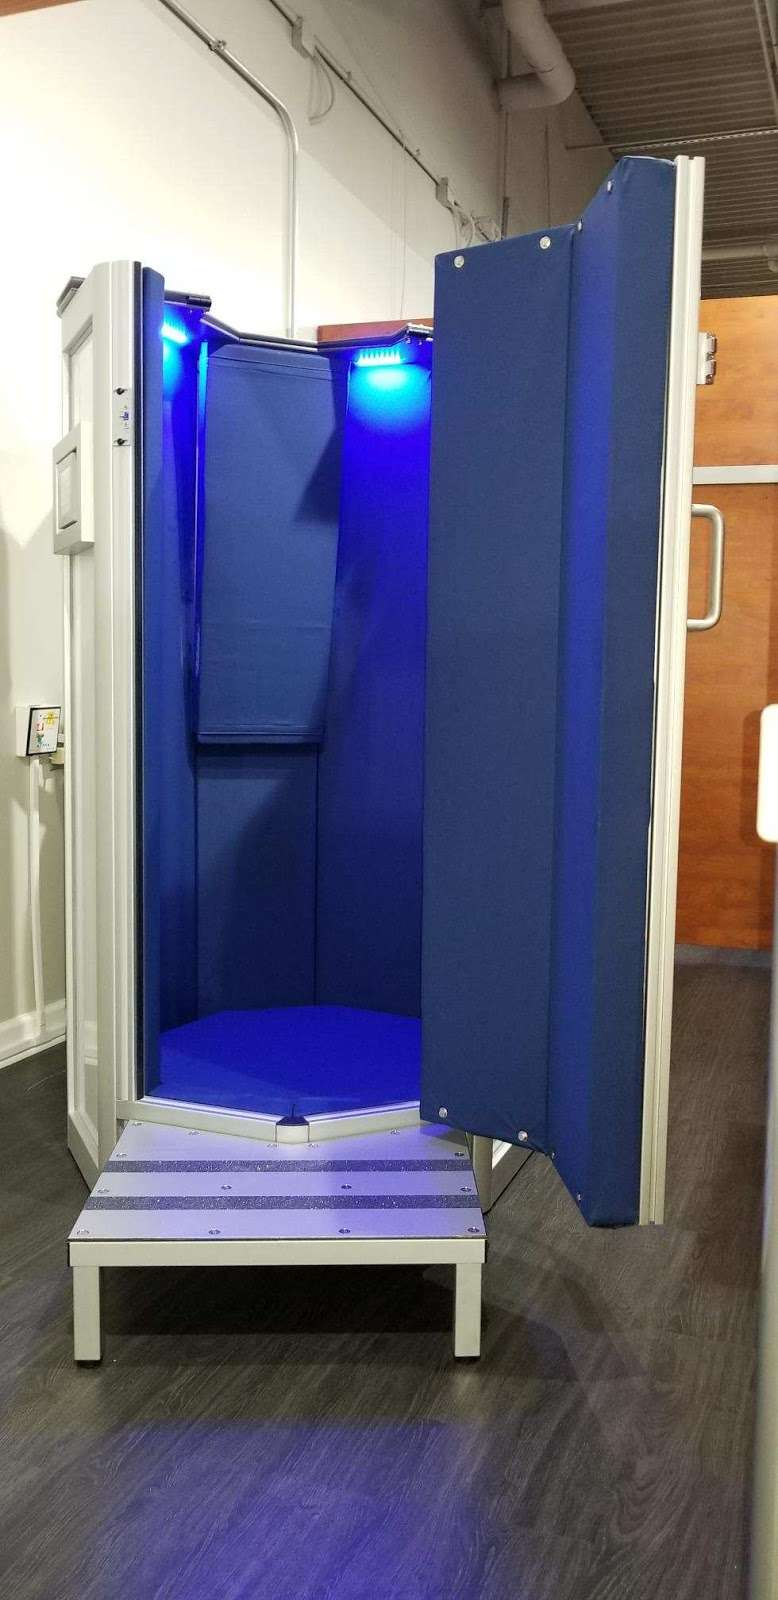 CryoLuxe Cryotherapy Plainfield - spa    Photo 6 of 10   Address: 2316 IL-59 Located Inside Unlimited Tan, Plainfield Township, IL 60586, USA   Phone: (815) 254-8900